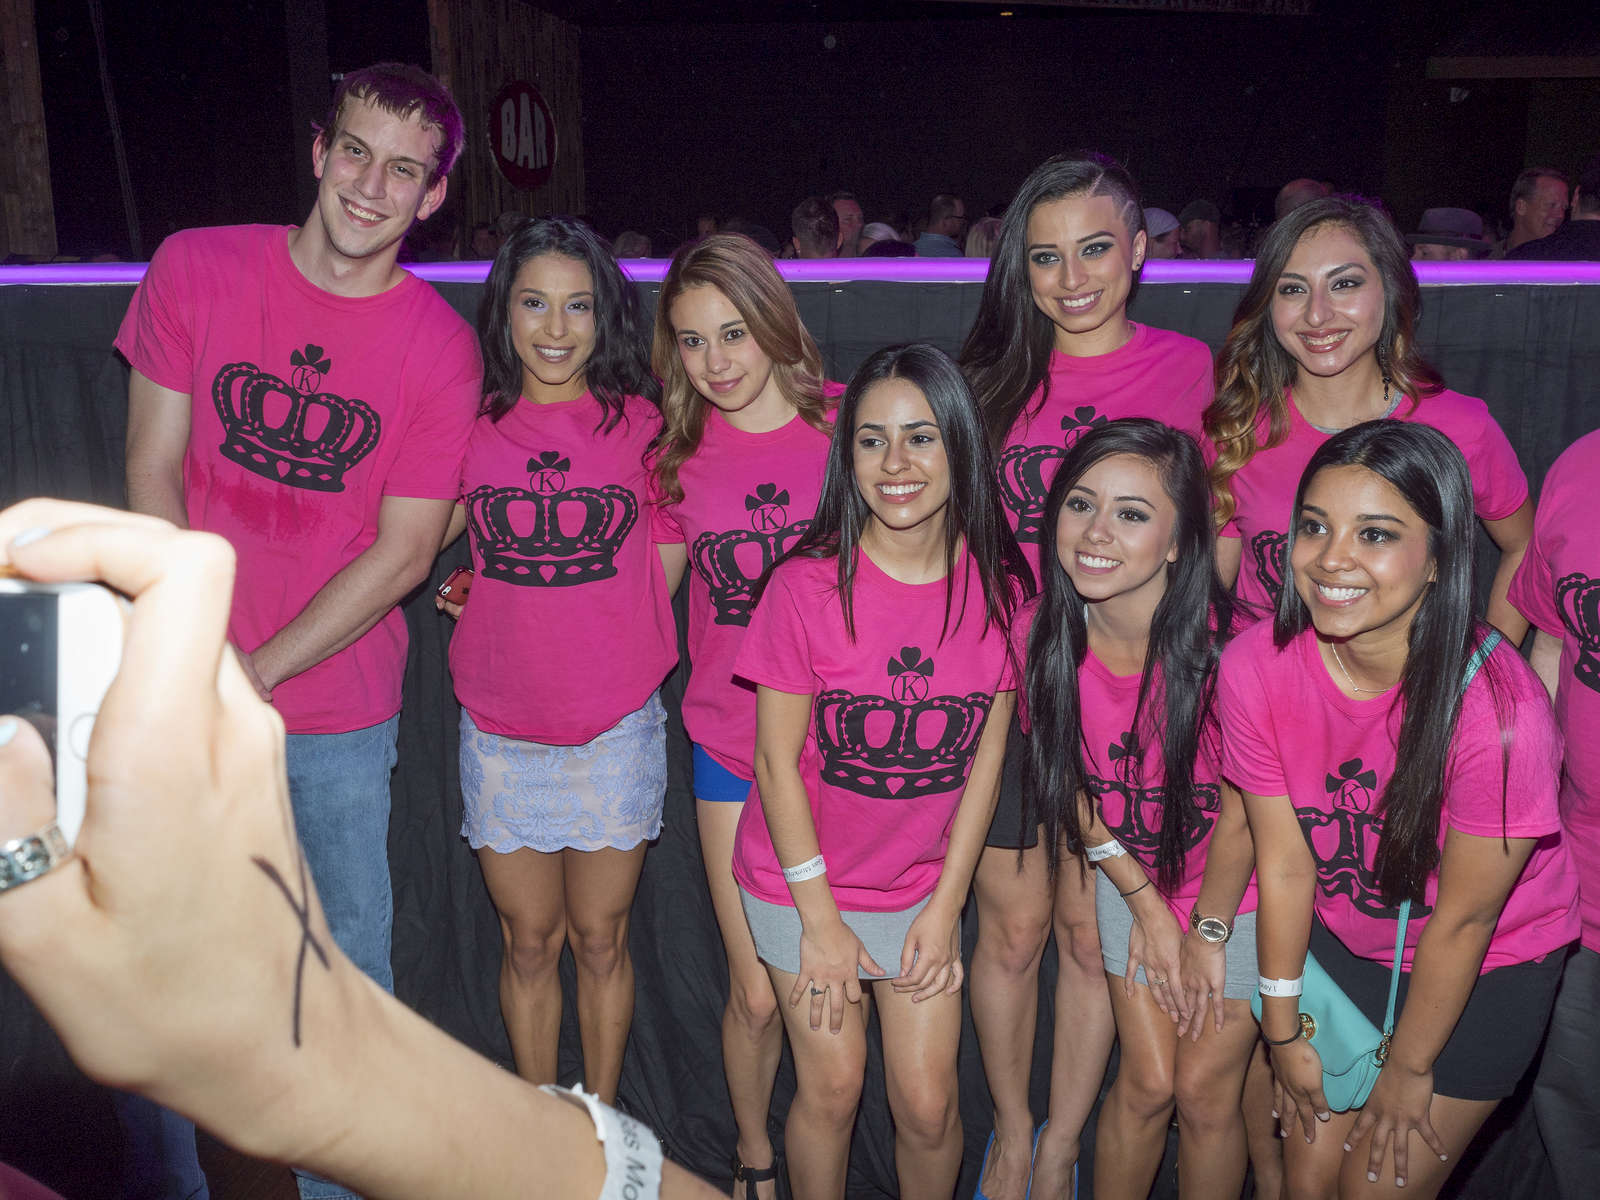 Guests pose for a photograph by the stage at the Twin Peaks 2015 National Bikini Contest where around 68 girls from the USA competed for the crown for Miss Twin Peaks 2015, hosted at Gas Monkey Live, Dallas on the 24th June.Twin Peaks is a chain of sports bars and restaurants (colloquially referred to as breastaurants) based in Dallas, Texas. The chain is known for having its waitresses dress in revealing uniforms that consist of cleavage- and midriff-revealing red plaid (or sometimes black bikini) tops, as well as khaki short shorts. At other times, waitresses wear revealing seasonal or themed outfits. Restaurants are decorated in the theme of a wilderness lodge and serve a mix of American, Southwest and Southern cuisines as well as alcohol. The chain's slogan is {quote}Eats. Drinks. Scenic Views.{quote}Dallas is a major city in Texas and is the largest urban center of the fourth most populous metropolitan area in the United States. The city ranks ninth in the U.S. and third in Texas after Houston and San Antonio. The city's prominence arose from its historical importance as a center for the oil and cotton industries, and its position along numerous railroad lines.For two weeks in the summer of 2015, photographer Peter Dench visited Dallas to document the metroplex in his epic reportage, DENCH DOES DALLAS.Photographed using an Olympus E-M5 Mark II©Peter Dench/Getty Images Reportage